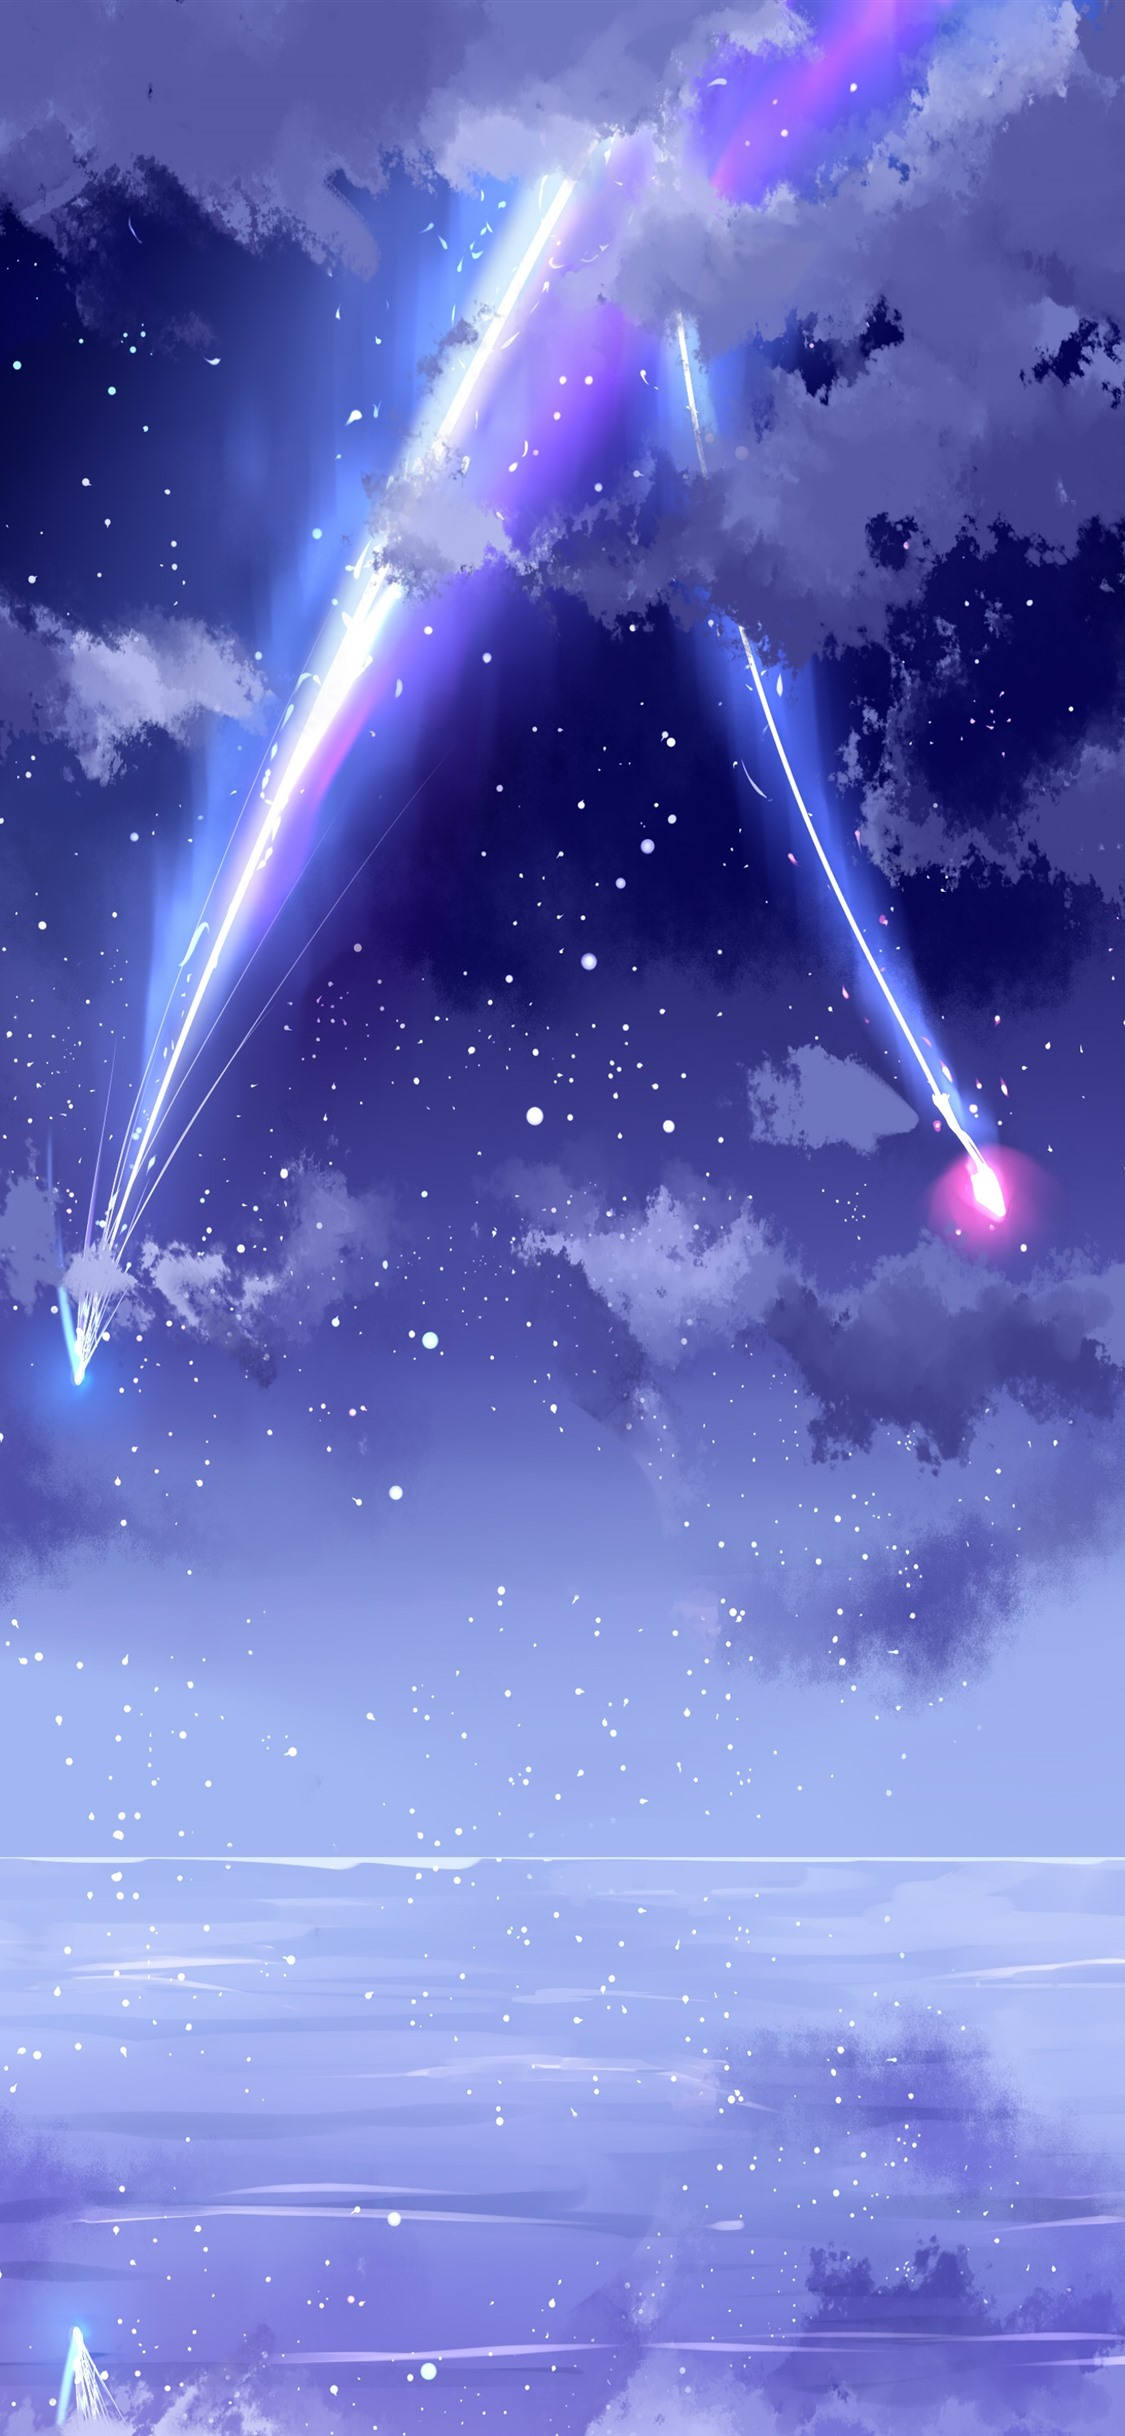 Your Name Anime Wallpaper Iphone 44765 Hd Wallpaper Backgrounds Download